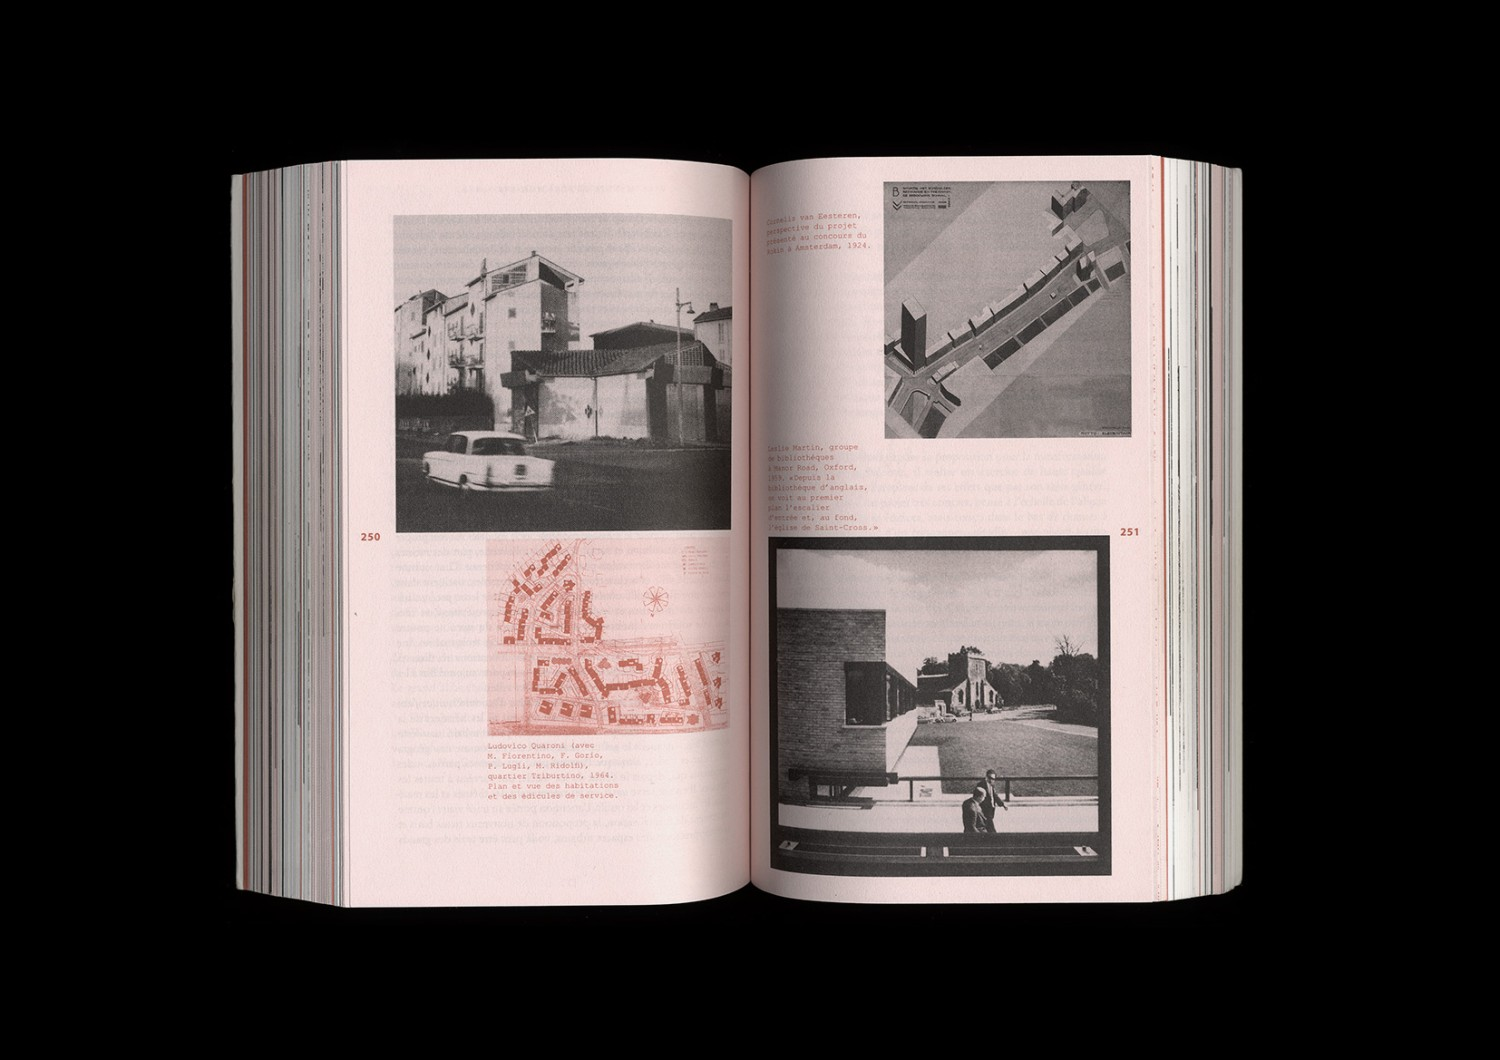 <p>Marnes, documents d'architecture, vol. 1<br /> Photo © Building Paris</p>